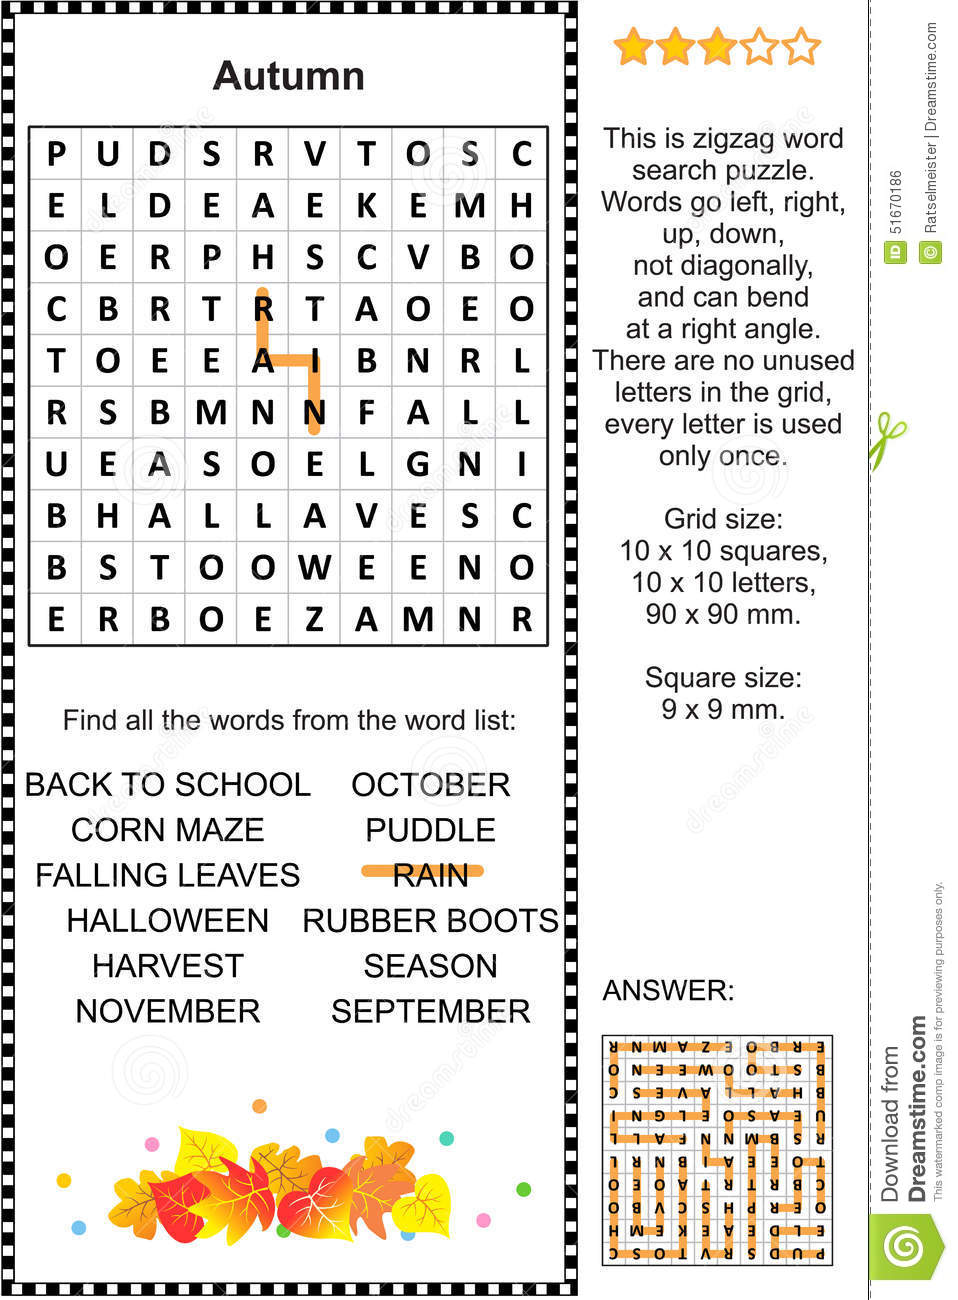 Autumn Themed Wordsearch Puzzle Stock Vector - Image: 51670186